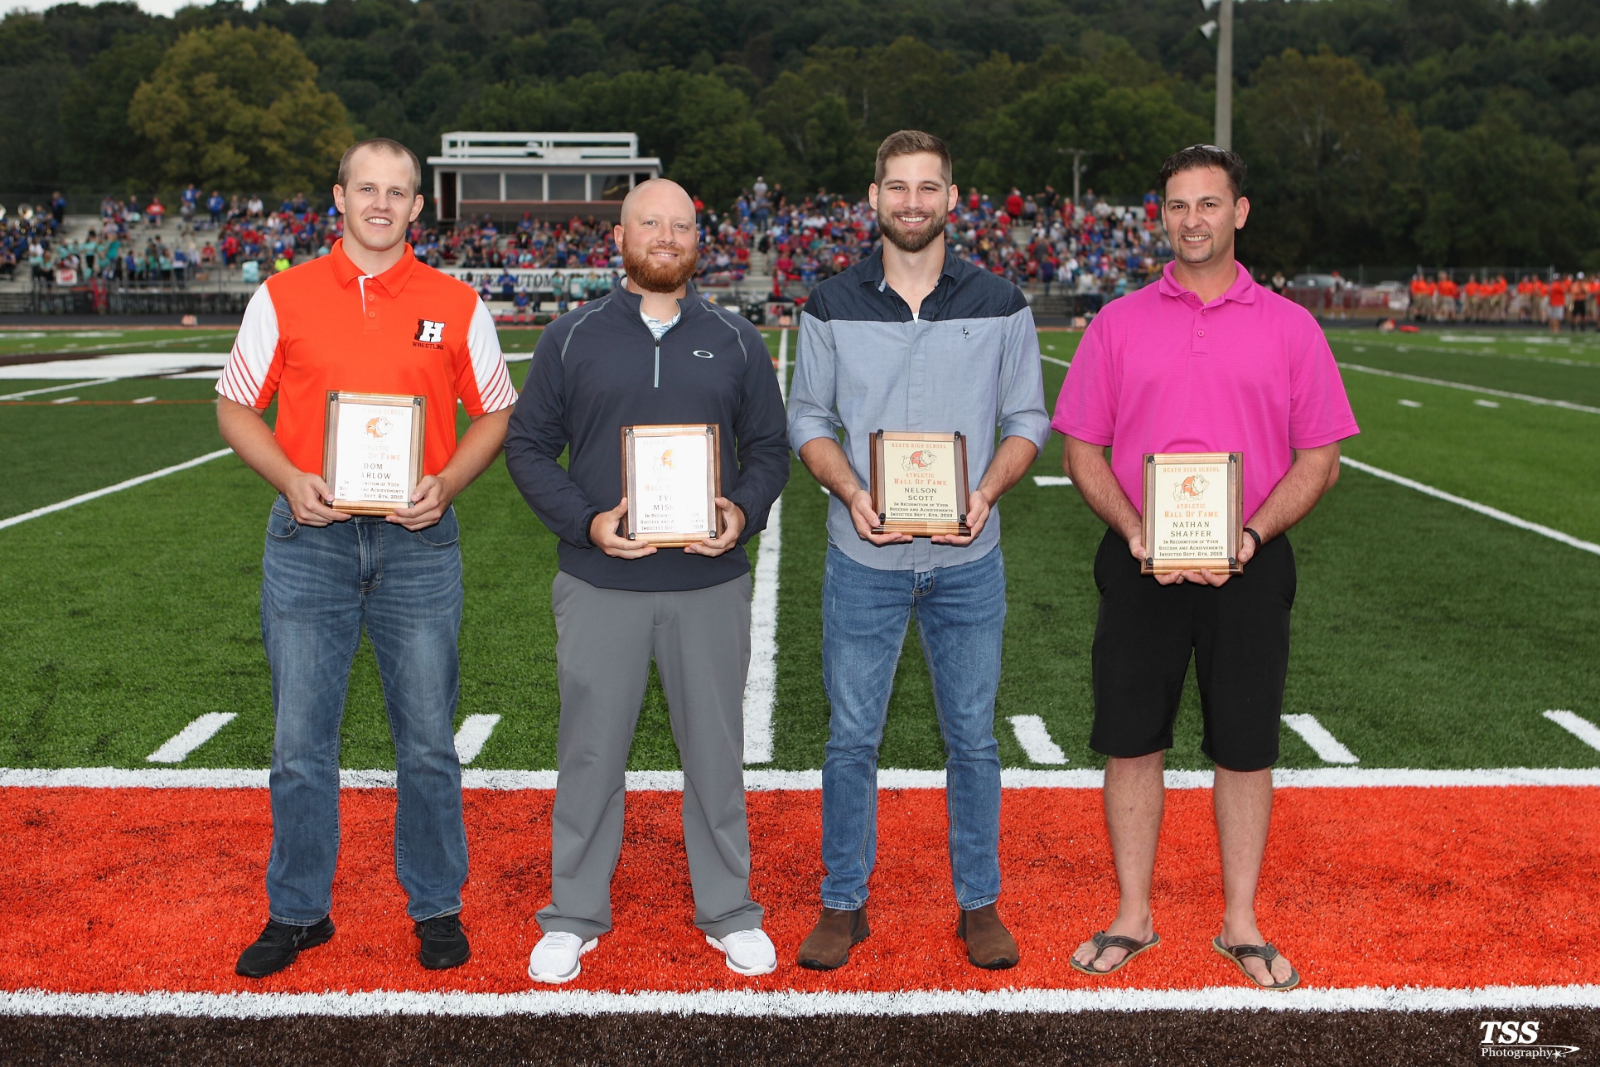 Heath Athletic Hall of Fame Inductees 2019